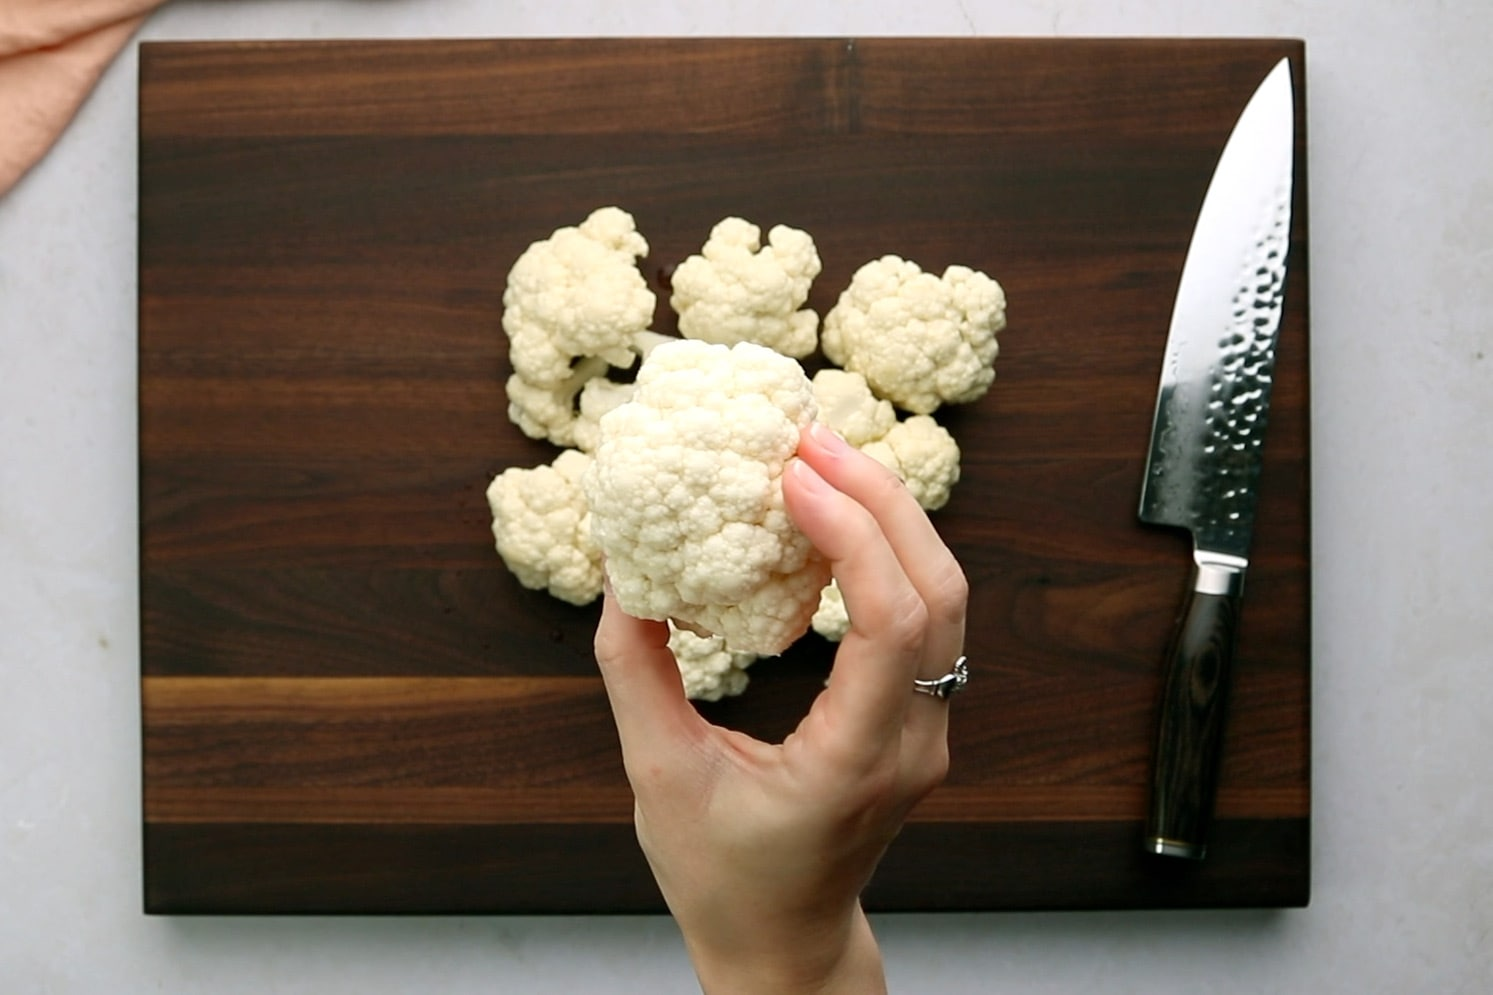 Holding a large cauliflower floret over a wooden cutting board.